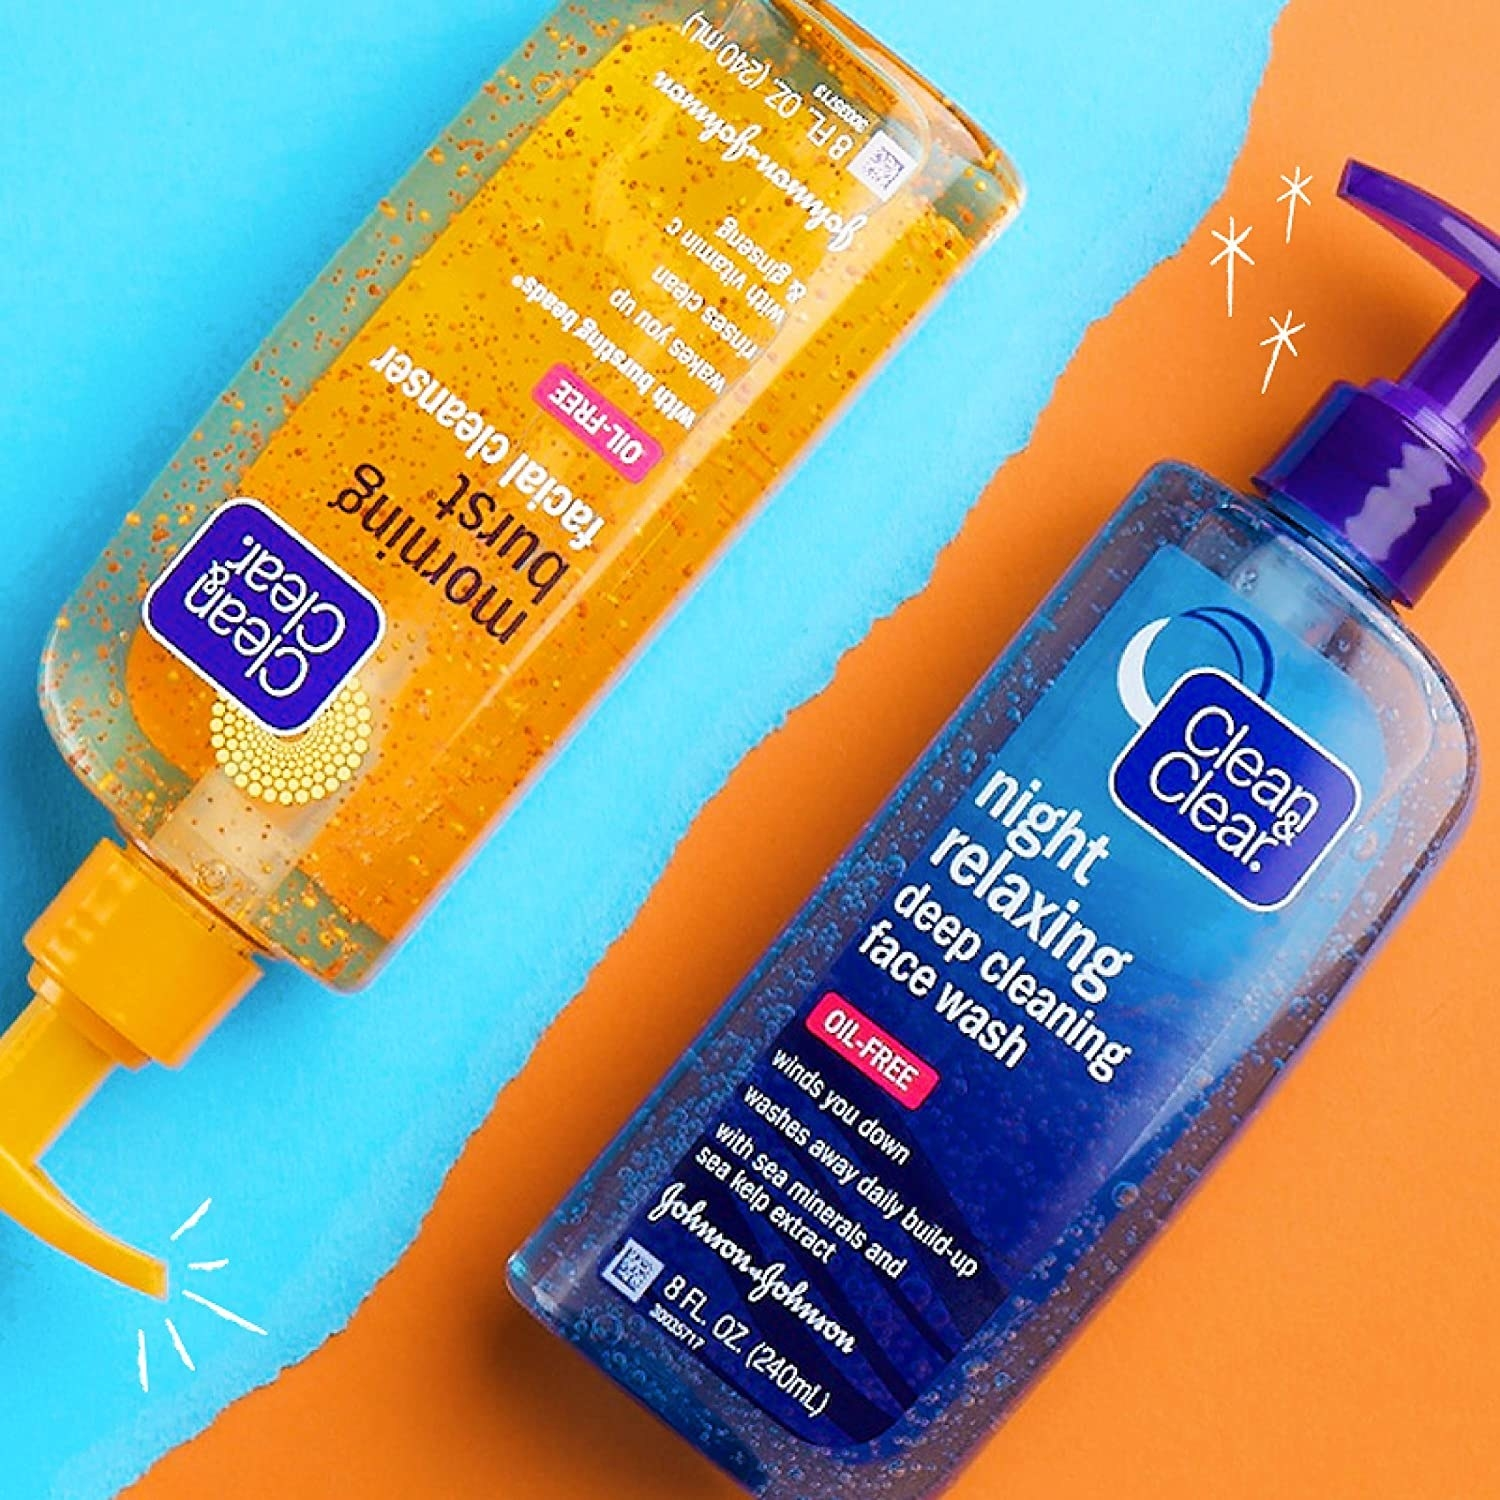 The bottles of the Clean & Clear Day and Night Face Cleansers